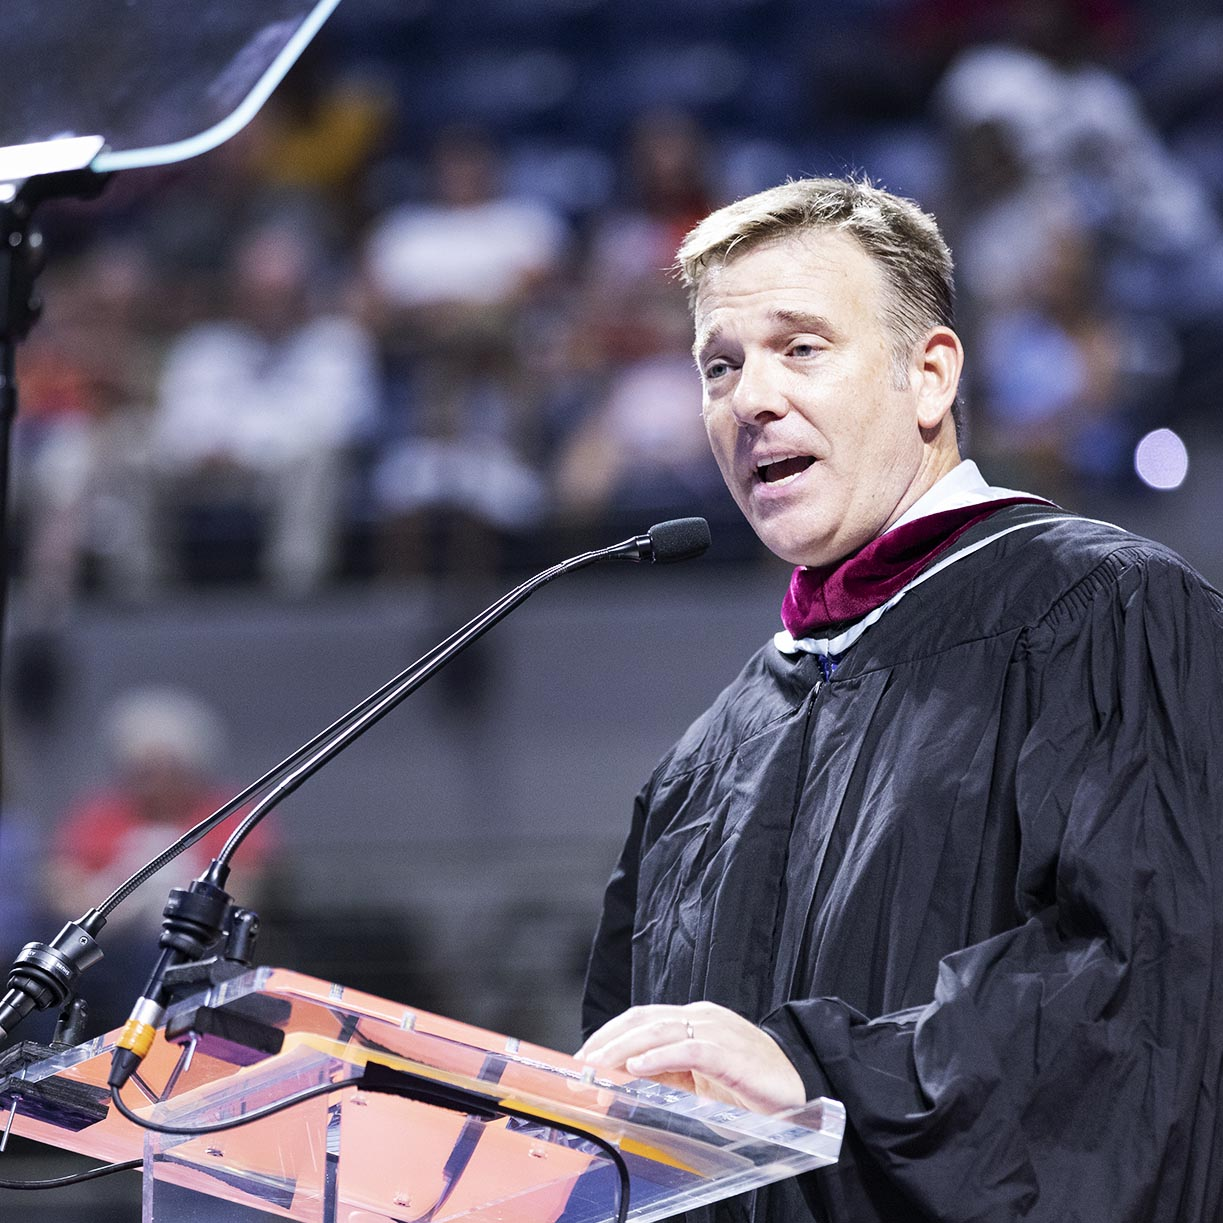 Author, professor Ted Spiker addresses Summer 2019 grads